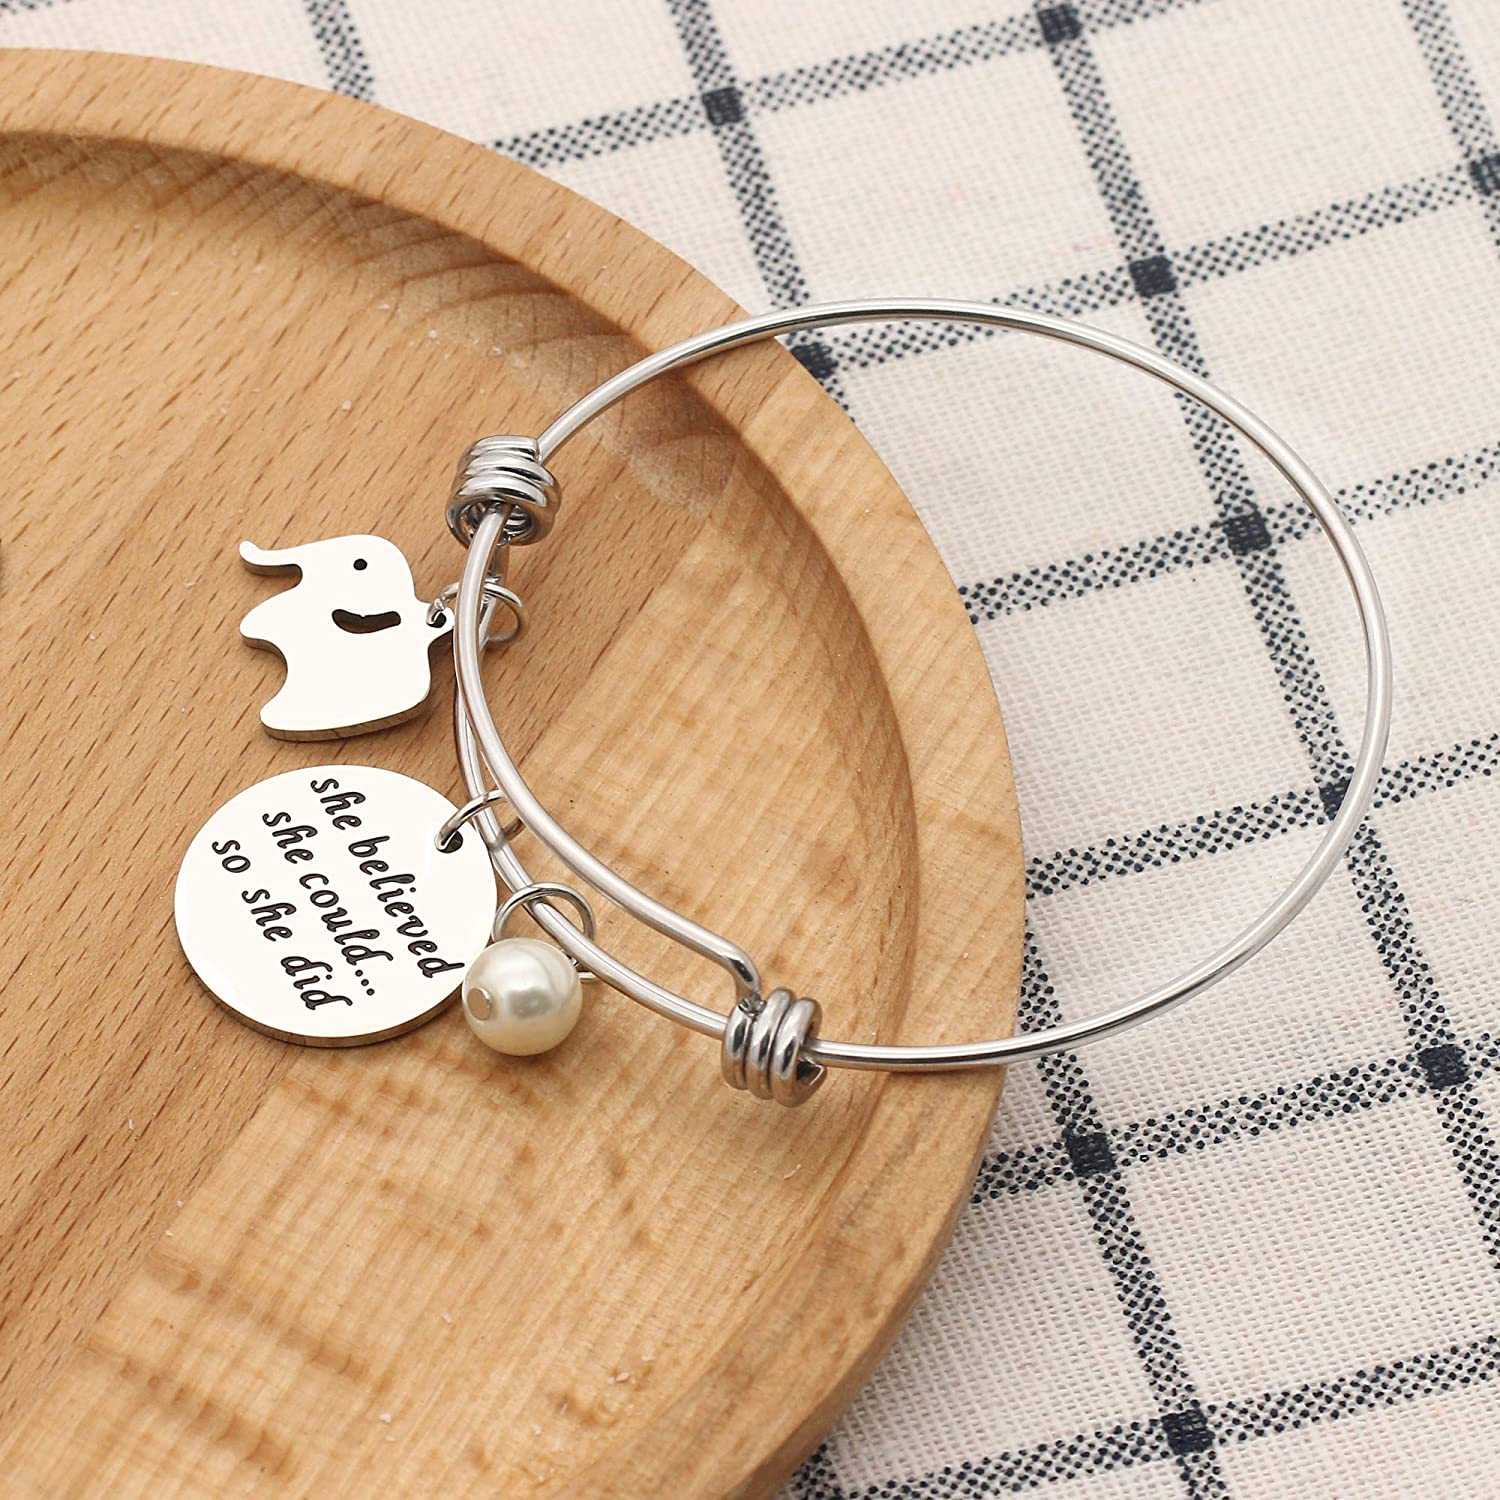 KENYG Inspirational Jewelry Engraved Bracelet She Believed she Could so she did Silver Adjustable Bracelet Bangle for Women Daughter Girl Birthday Gifts